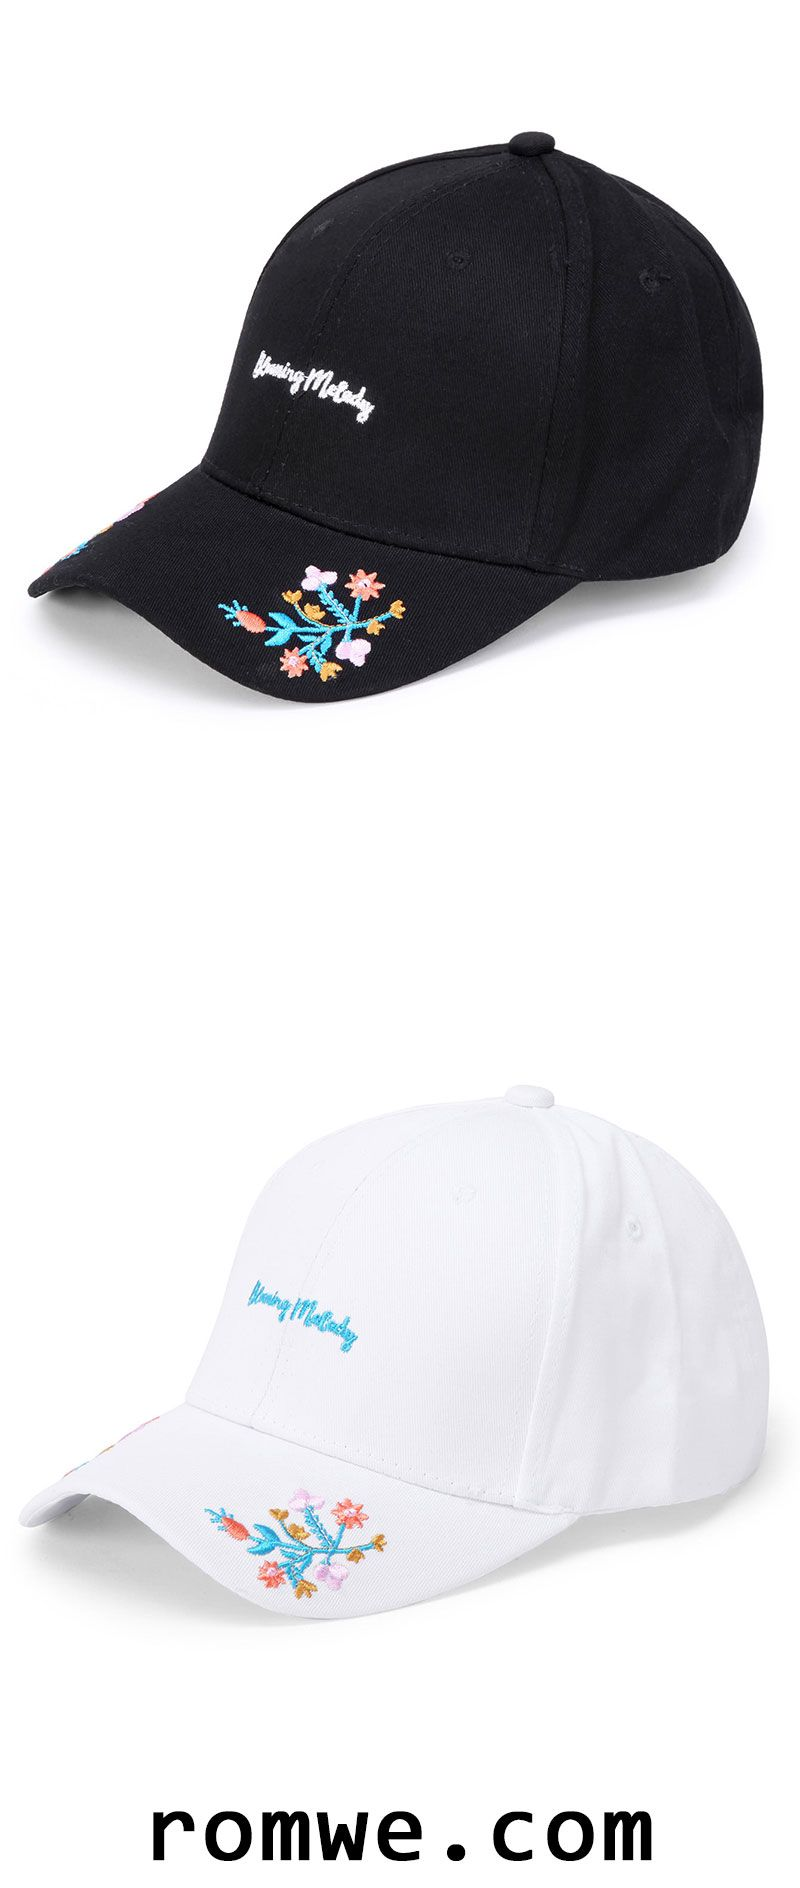 Embroidery Detail Baseball Cap Cap Designs Embroidery Details Fashion Design Classes